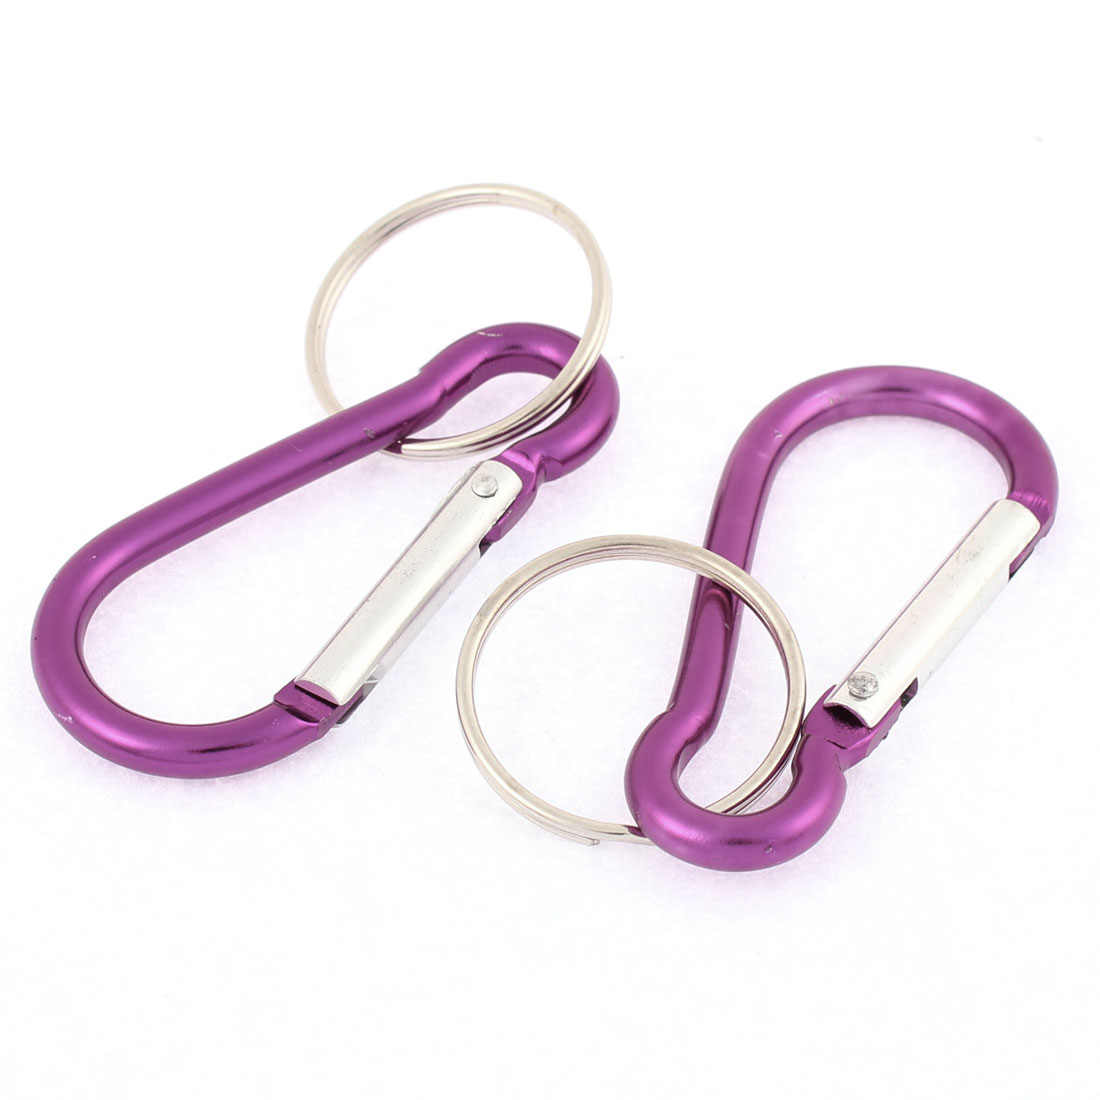 2 Pcs Aluminum Alloy Spring Loaded Gate Locking Carabiner Hook Keyring Purple